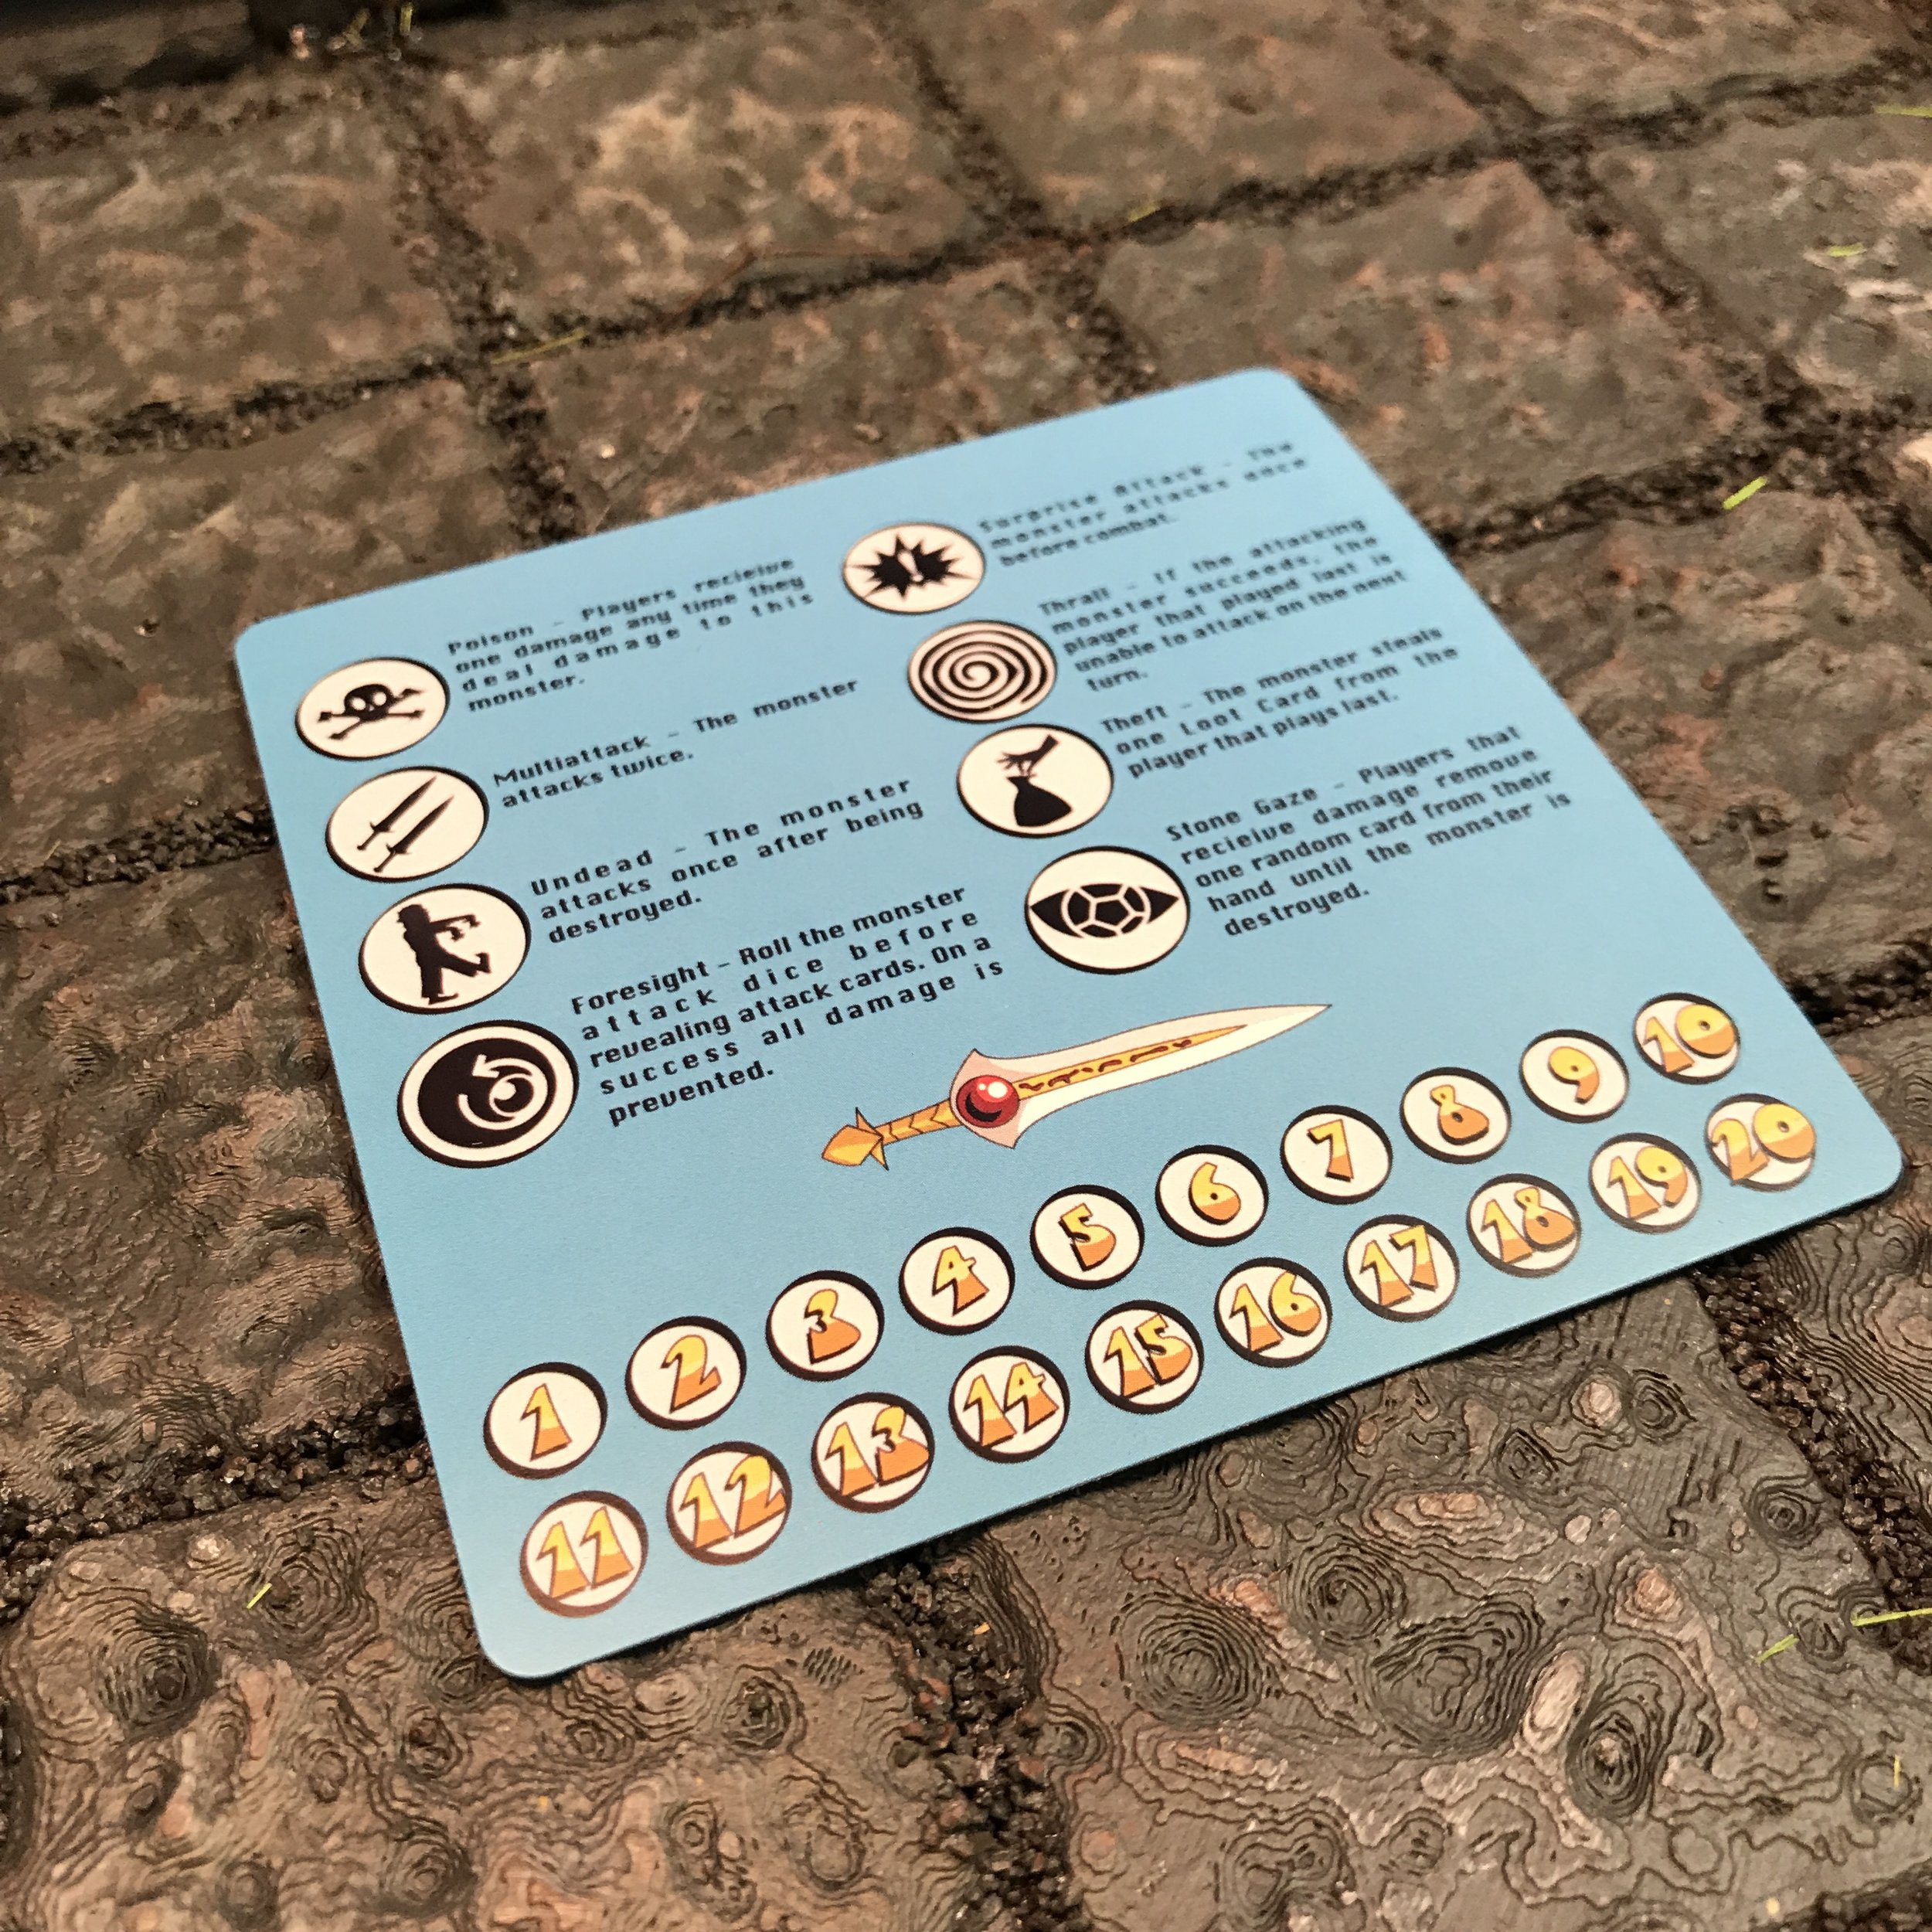 The player aid provides easy access to monster ability symbols and damage tracker.